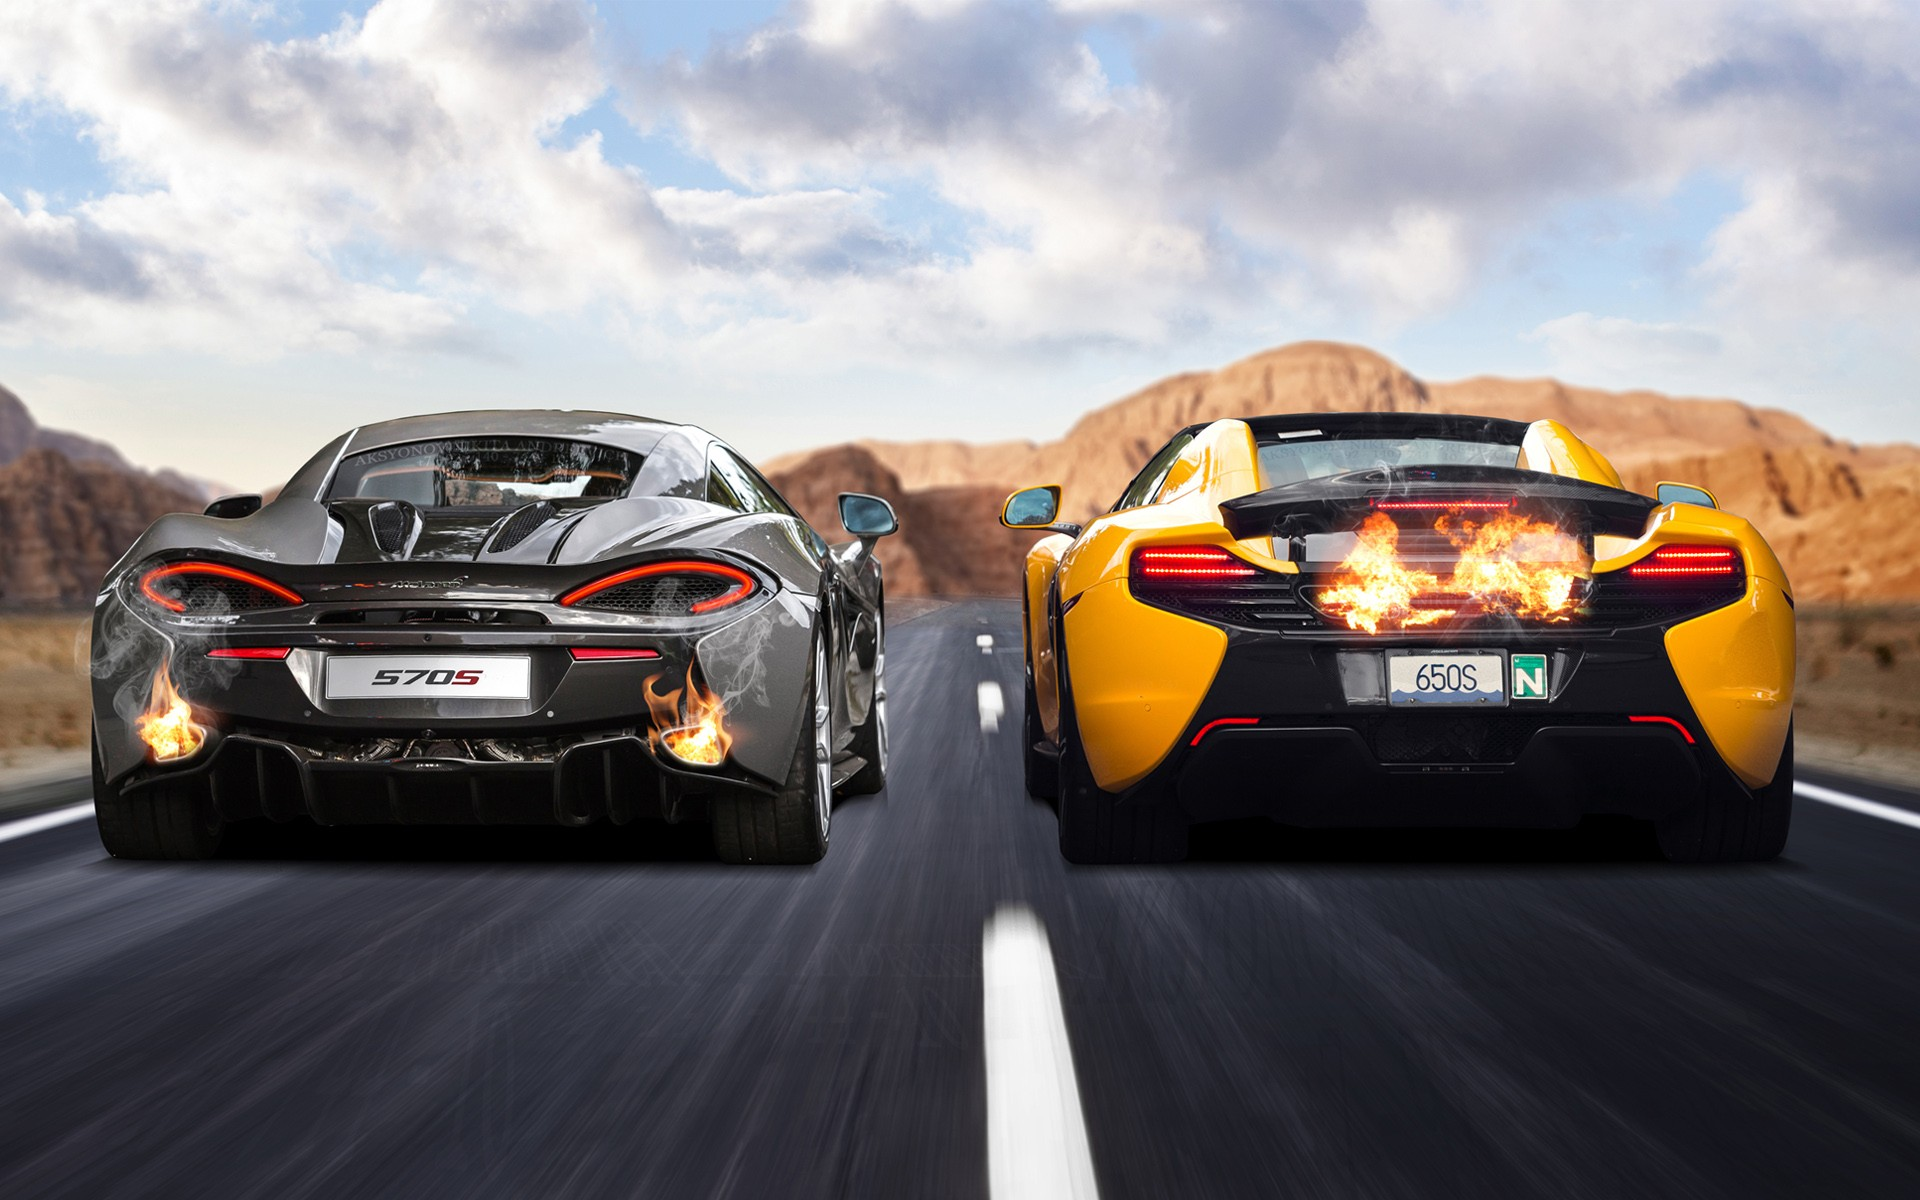 Wallpapers Hd: McLaren 570S & 650S Wallpaper